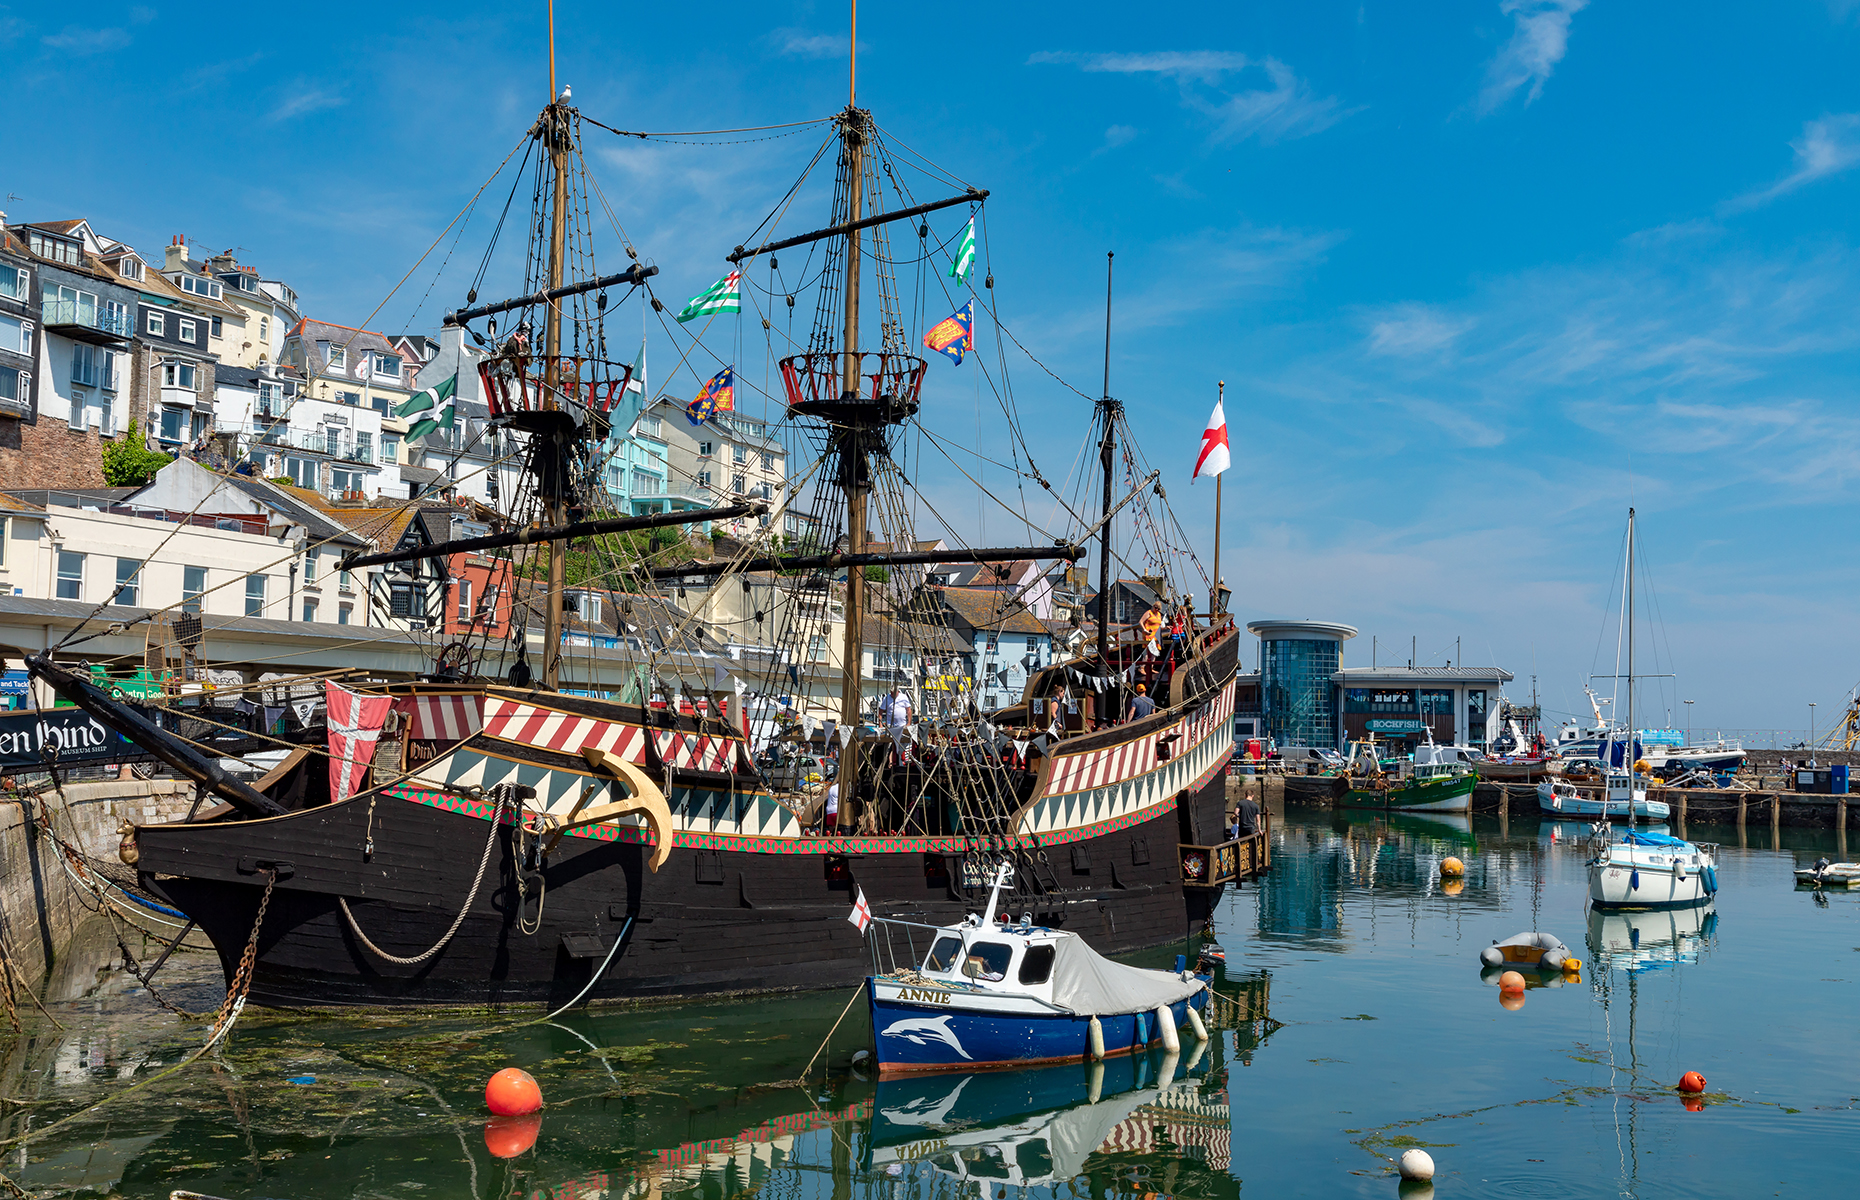 Golden Hind in Brixham Harbour